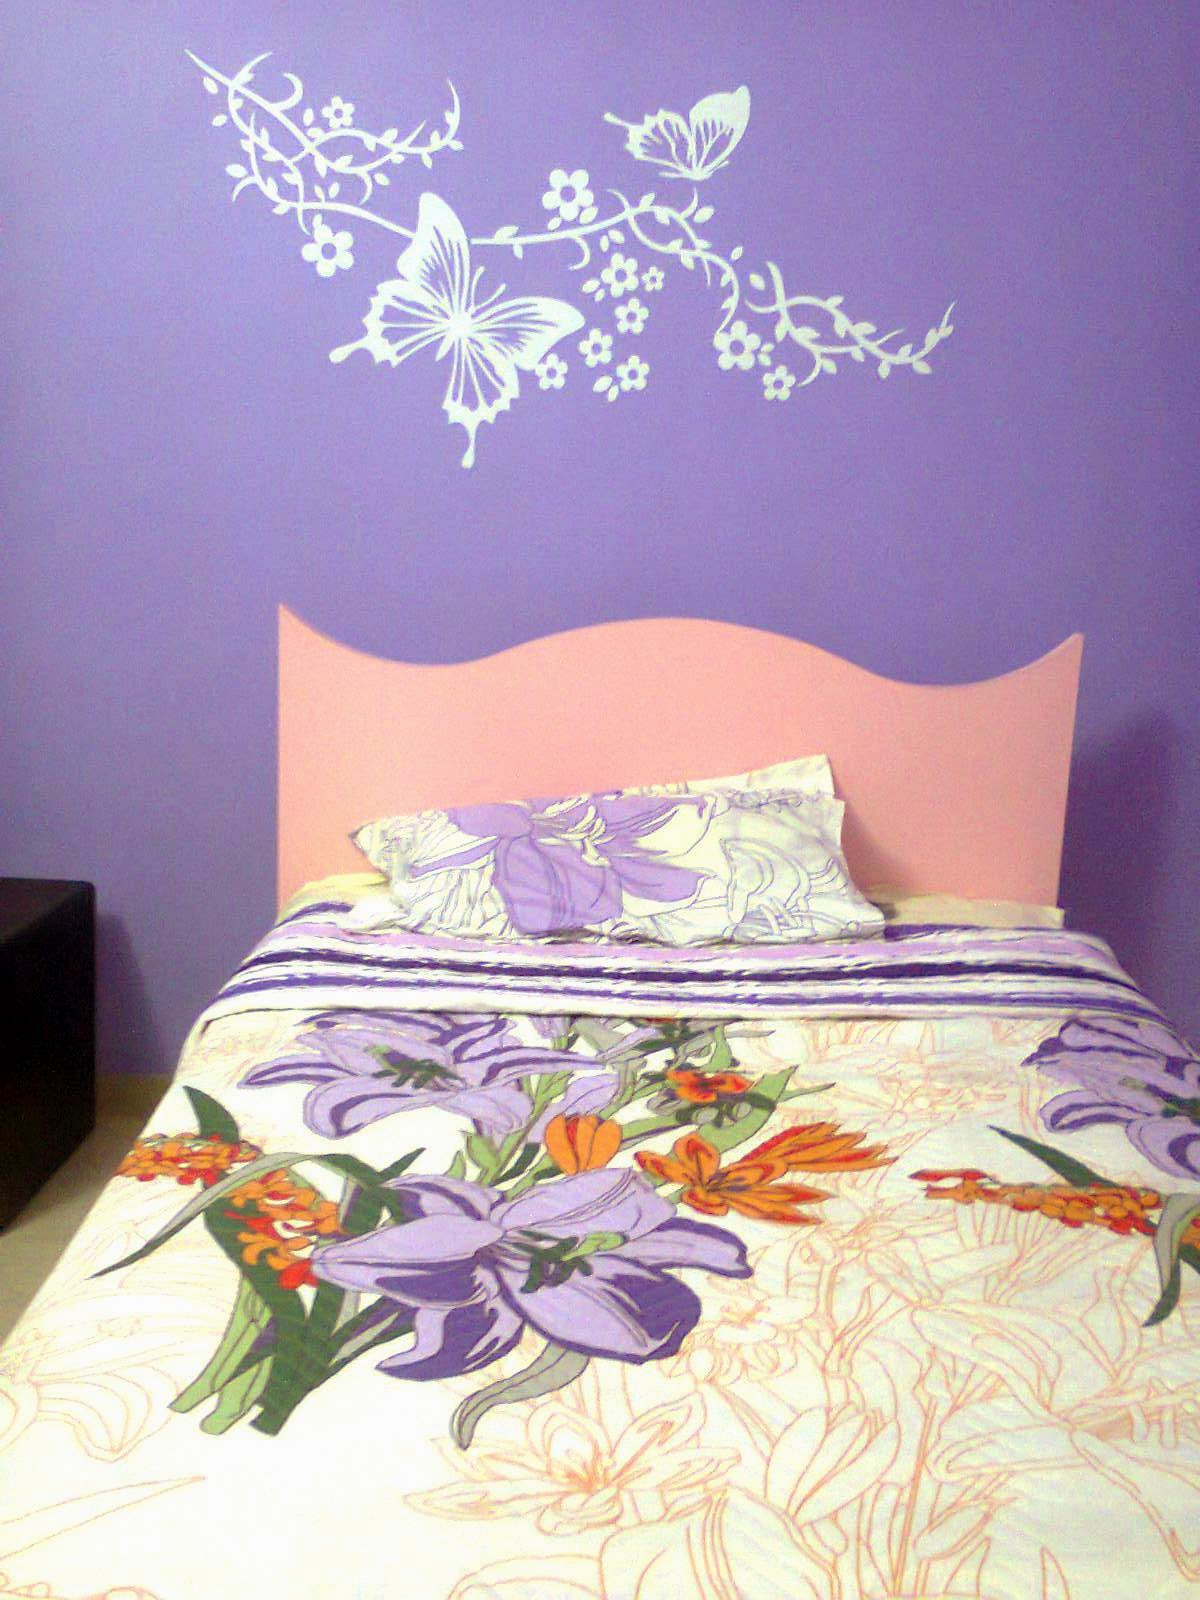 The Wall Decal Blog Finding The Perfect Wall Decal Design For - Wall decals mumbai